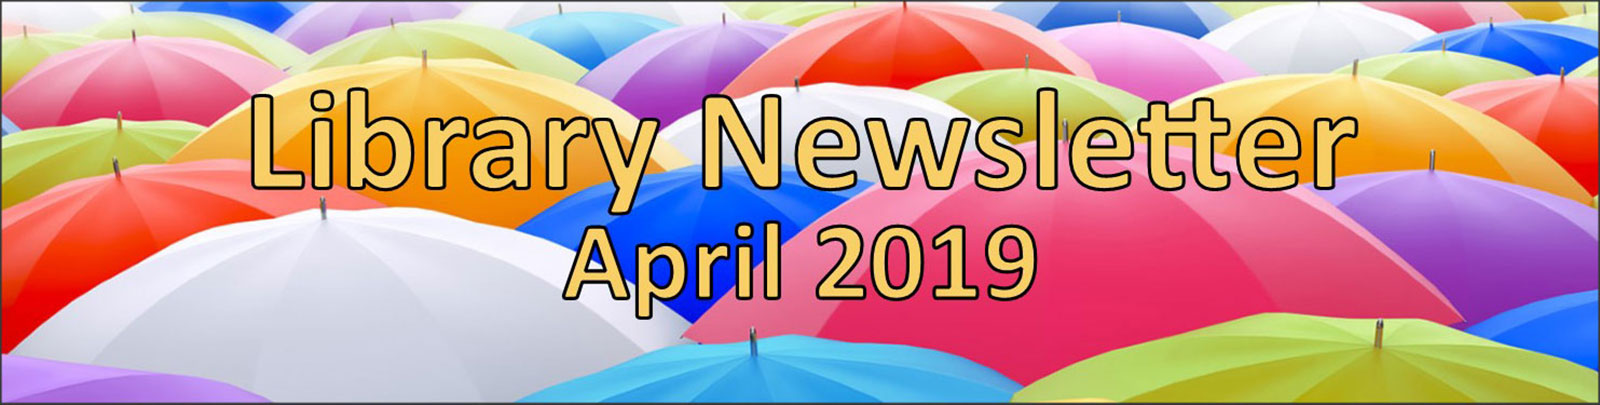 Library Newsletter April 2019 umbrella banner